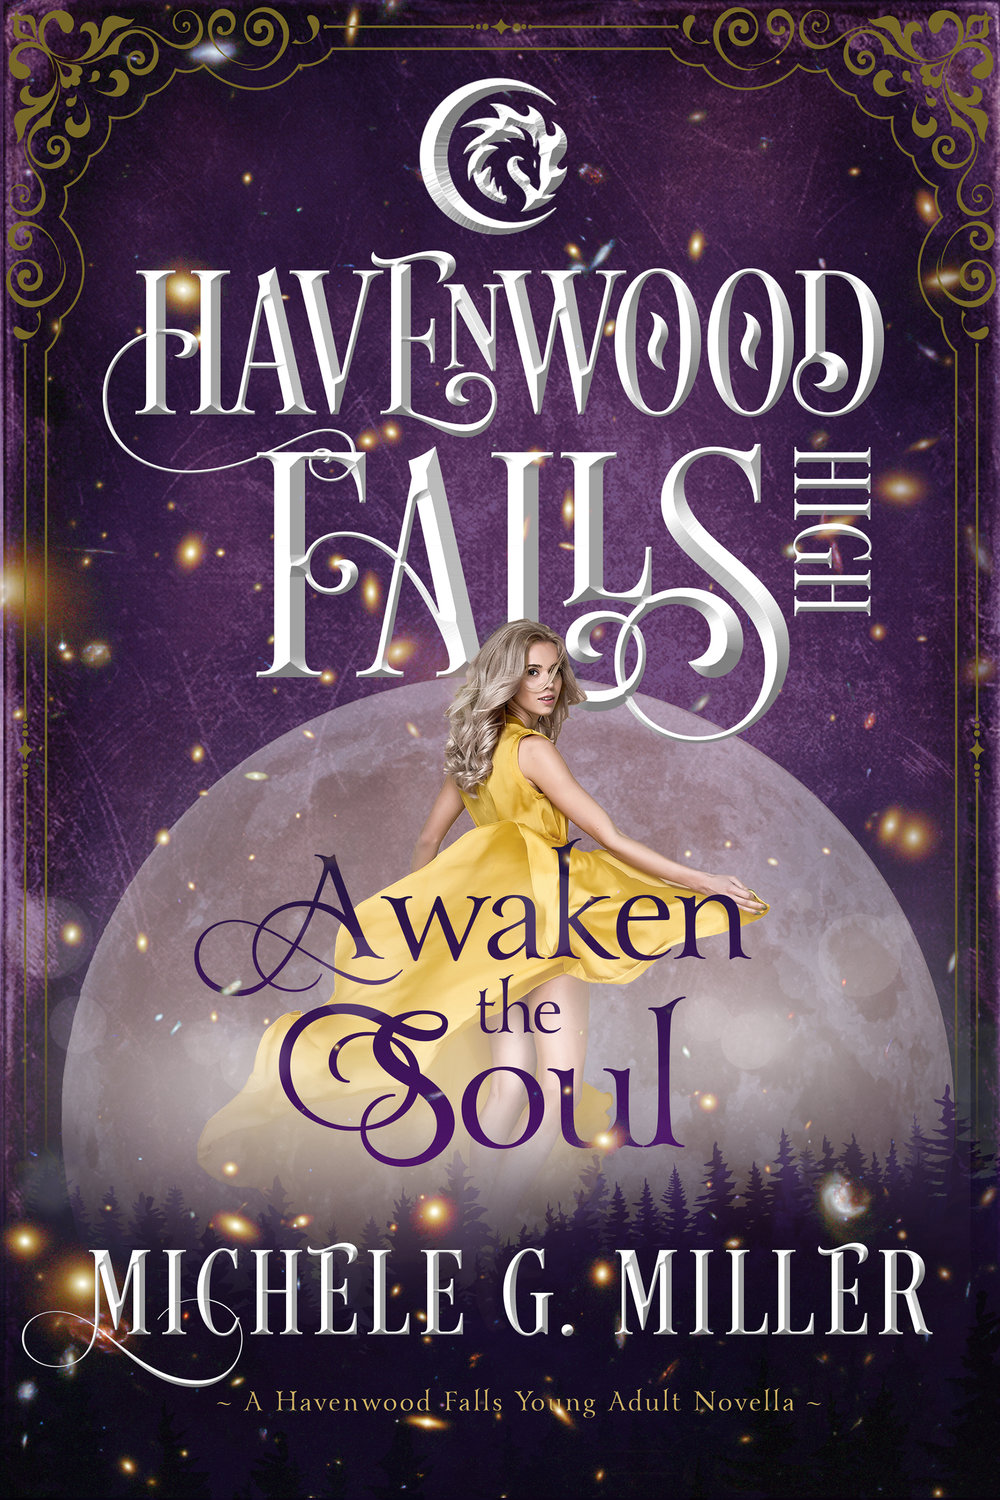 HavenwoodFalls-HIGH-AwakentheSoul--ebooklg.JPG